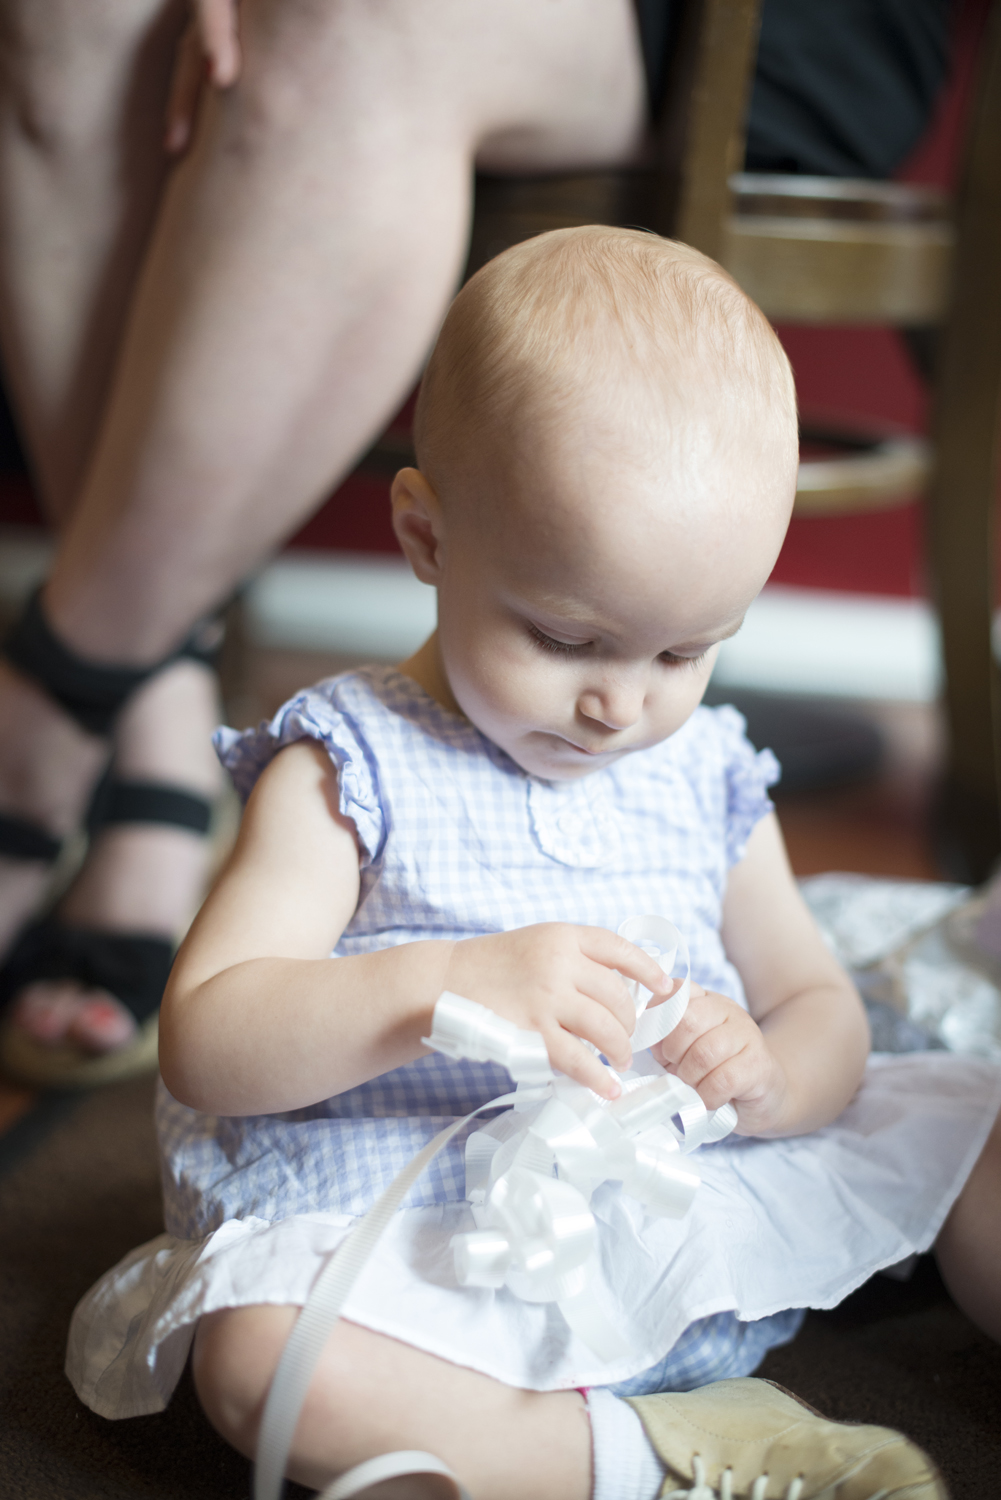 Baby in a gingham blue and white dress